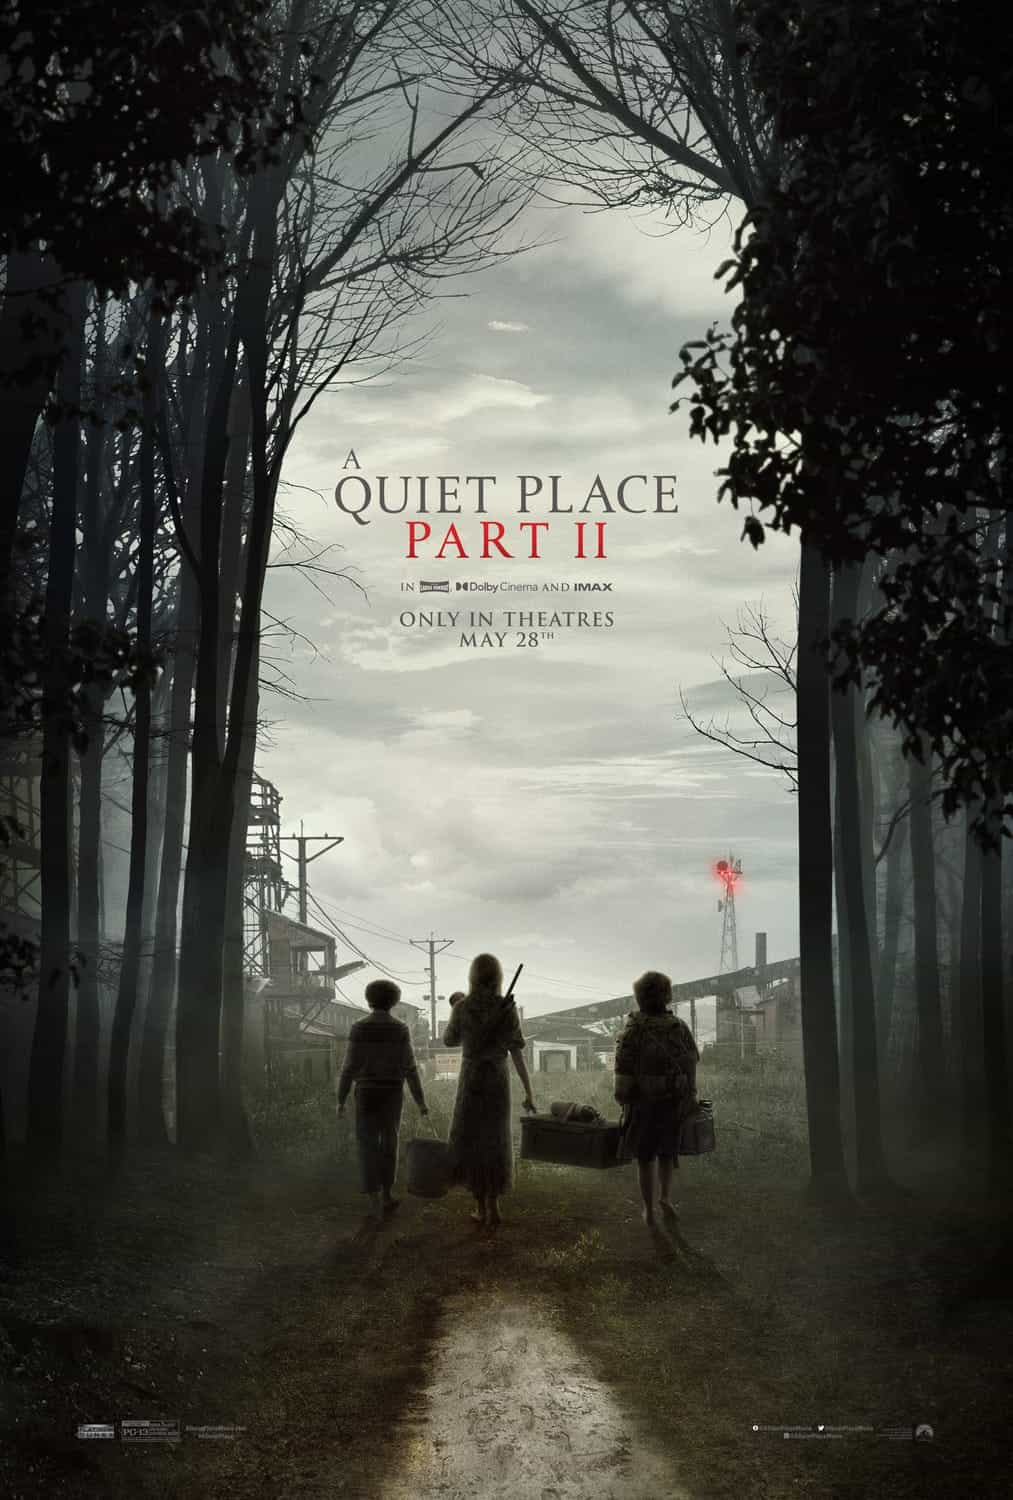 A Quiet Place Part II, due for release March 19th, gets put back due to global coronavirus issues